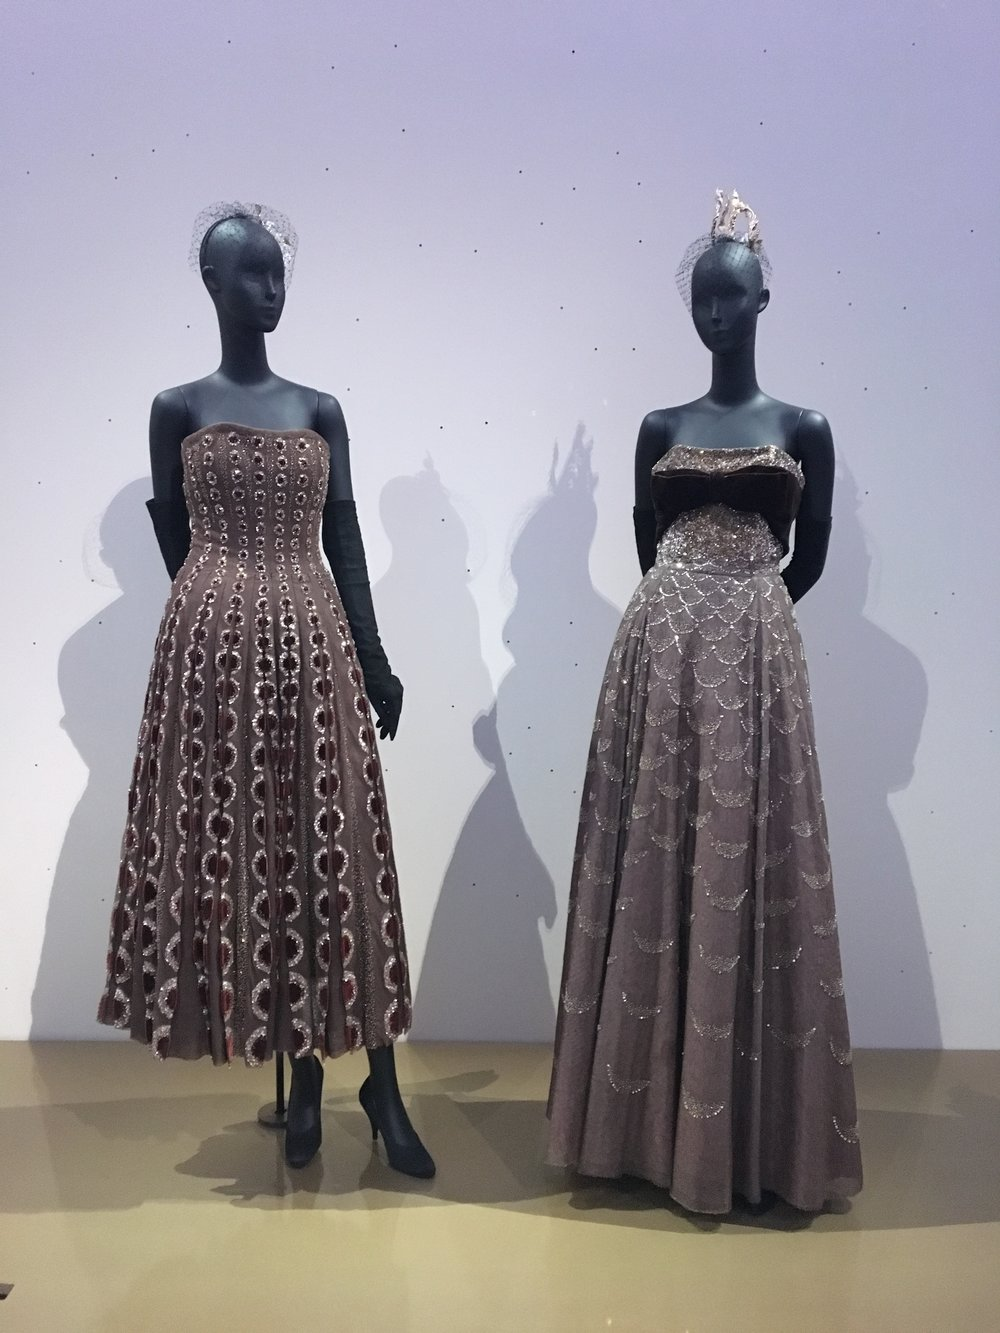 'Esther' (A/W 1952) and 'Mexique' (A/W 1951) by Christian Dior